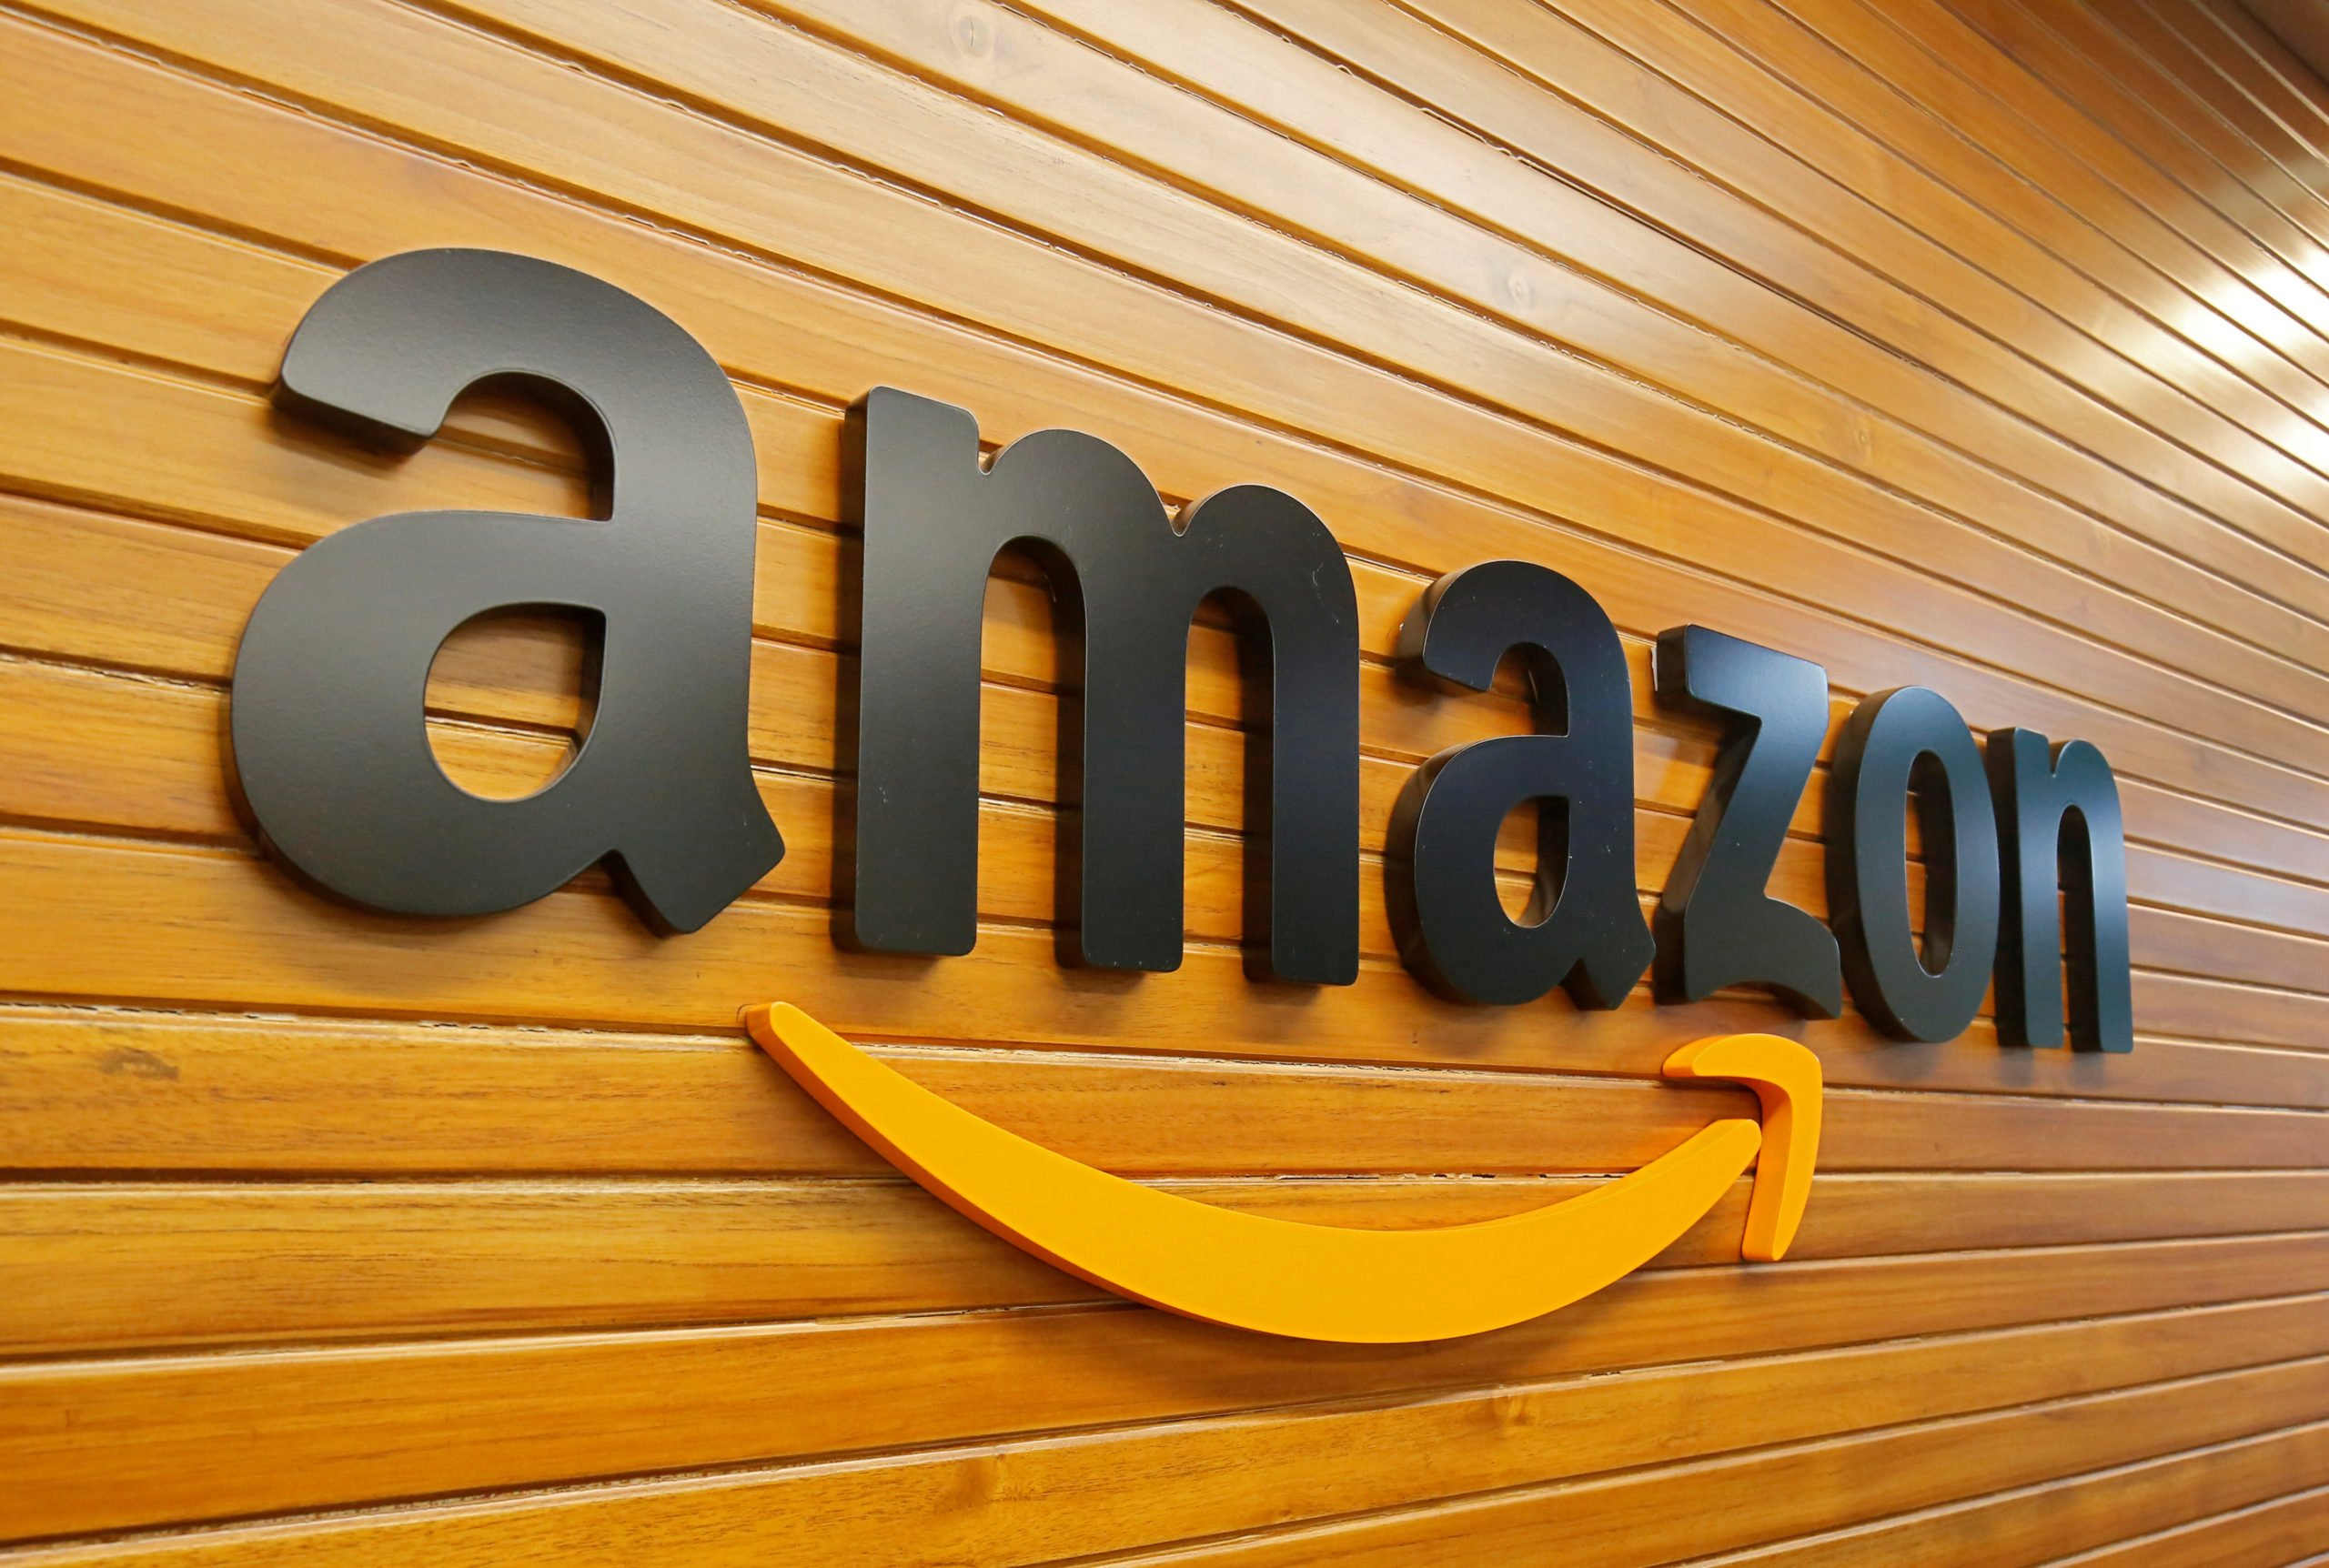 Amazon triplica beneficios;   gana 8,107 mdd en primer trimestre